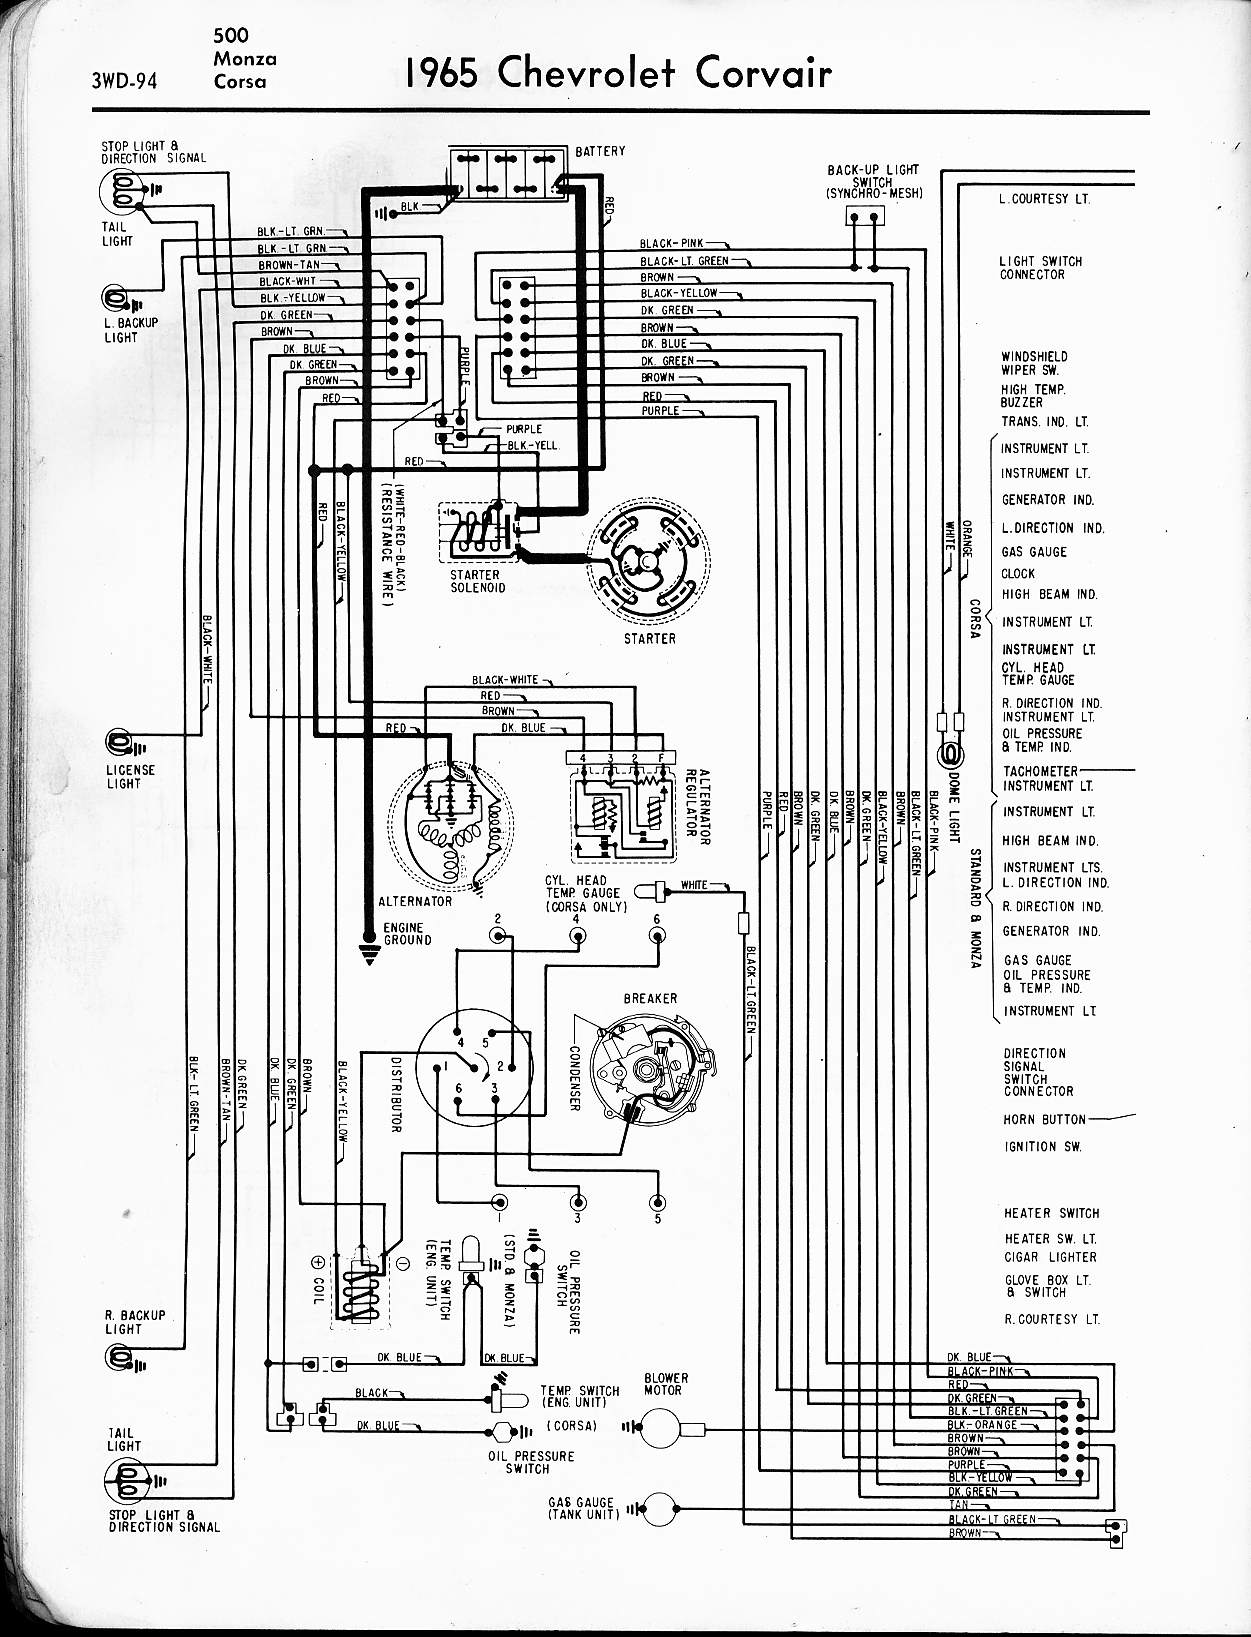 1965 Chevelle Wiring Diagram Chevy V8 Trusted 1978 Chevrolet El Camino Schematic 57 65 Diagrams